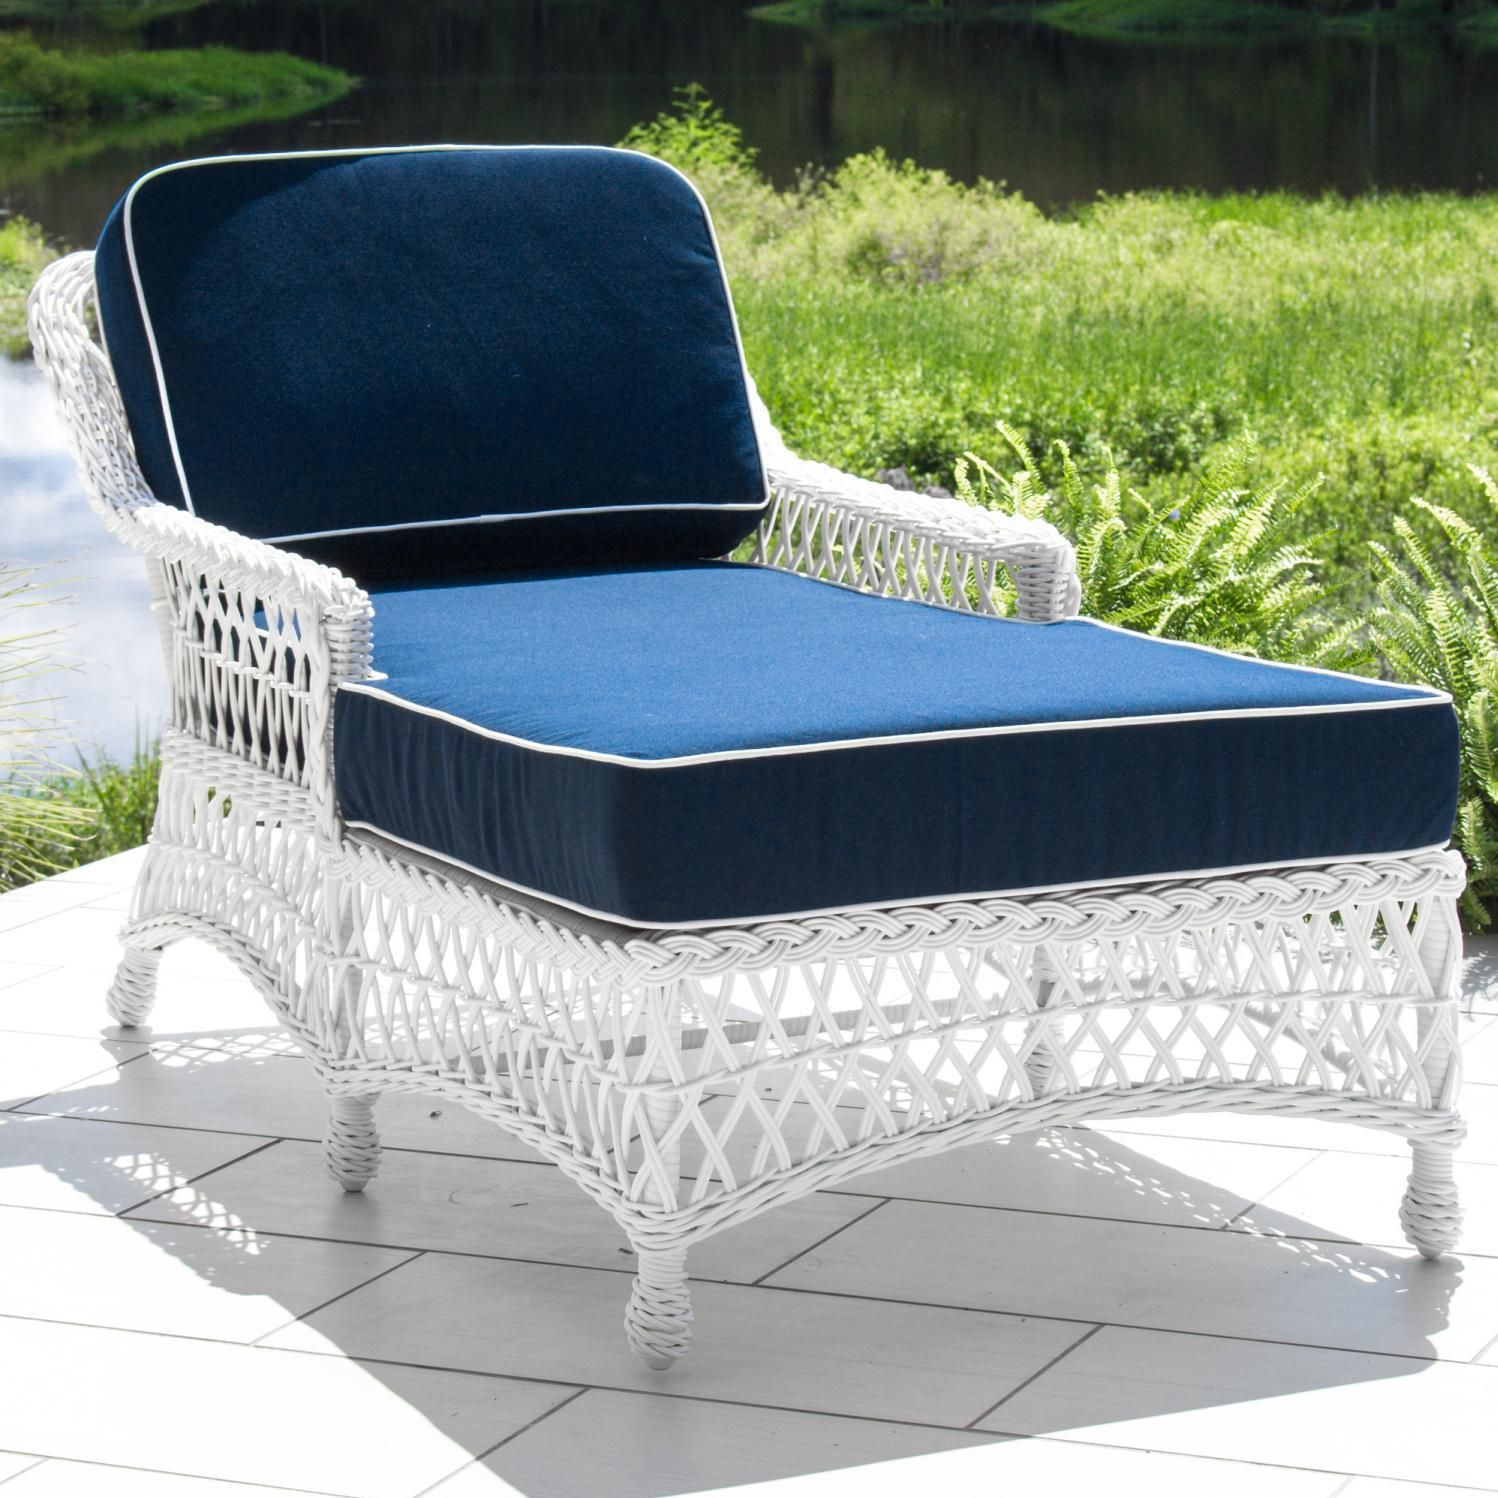 Everglades white resin wicker patio chaise lounge by